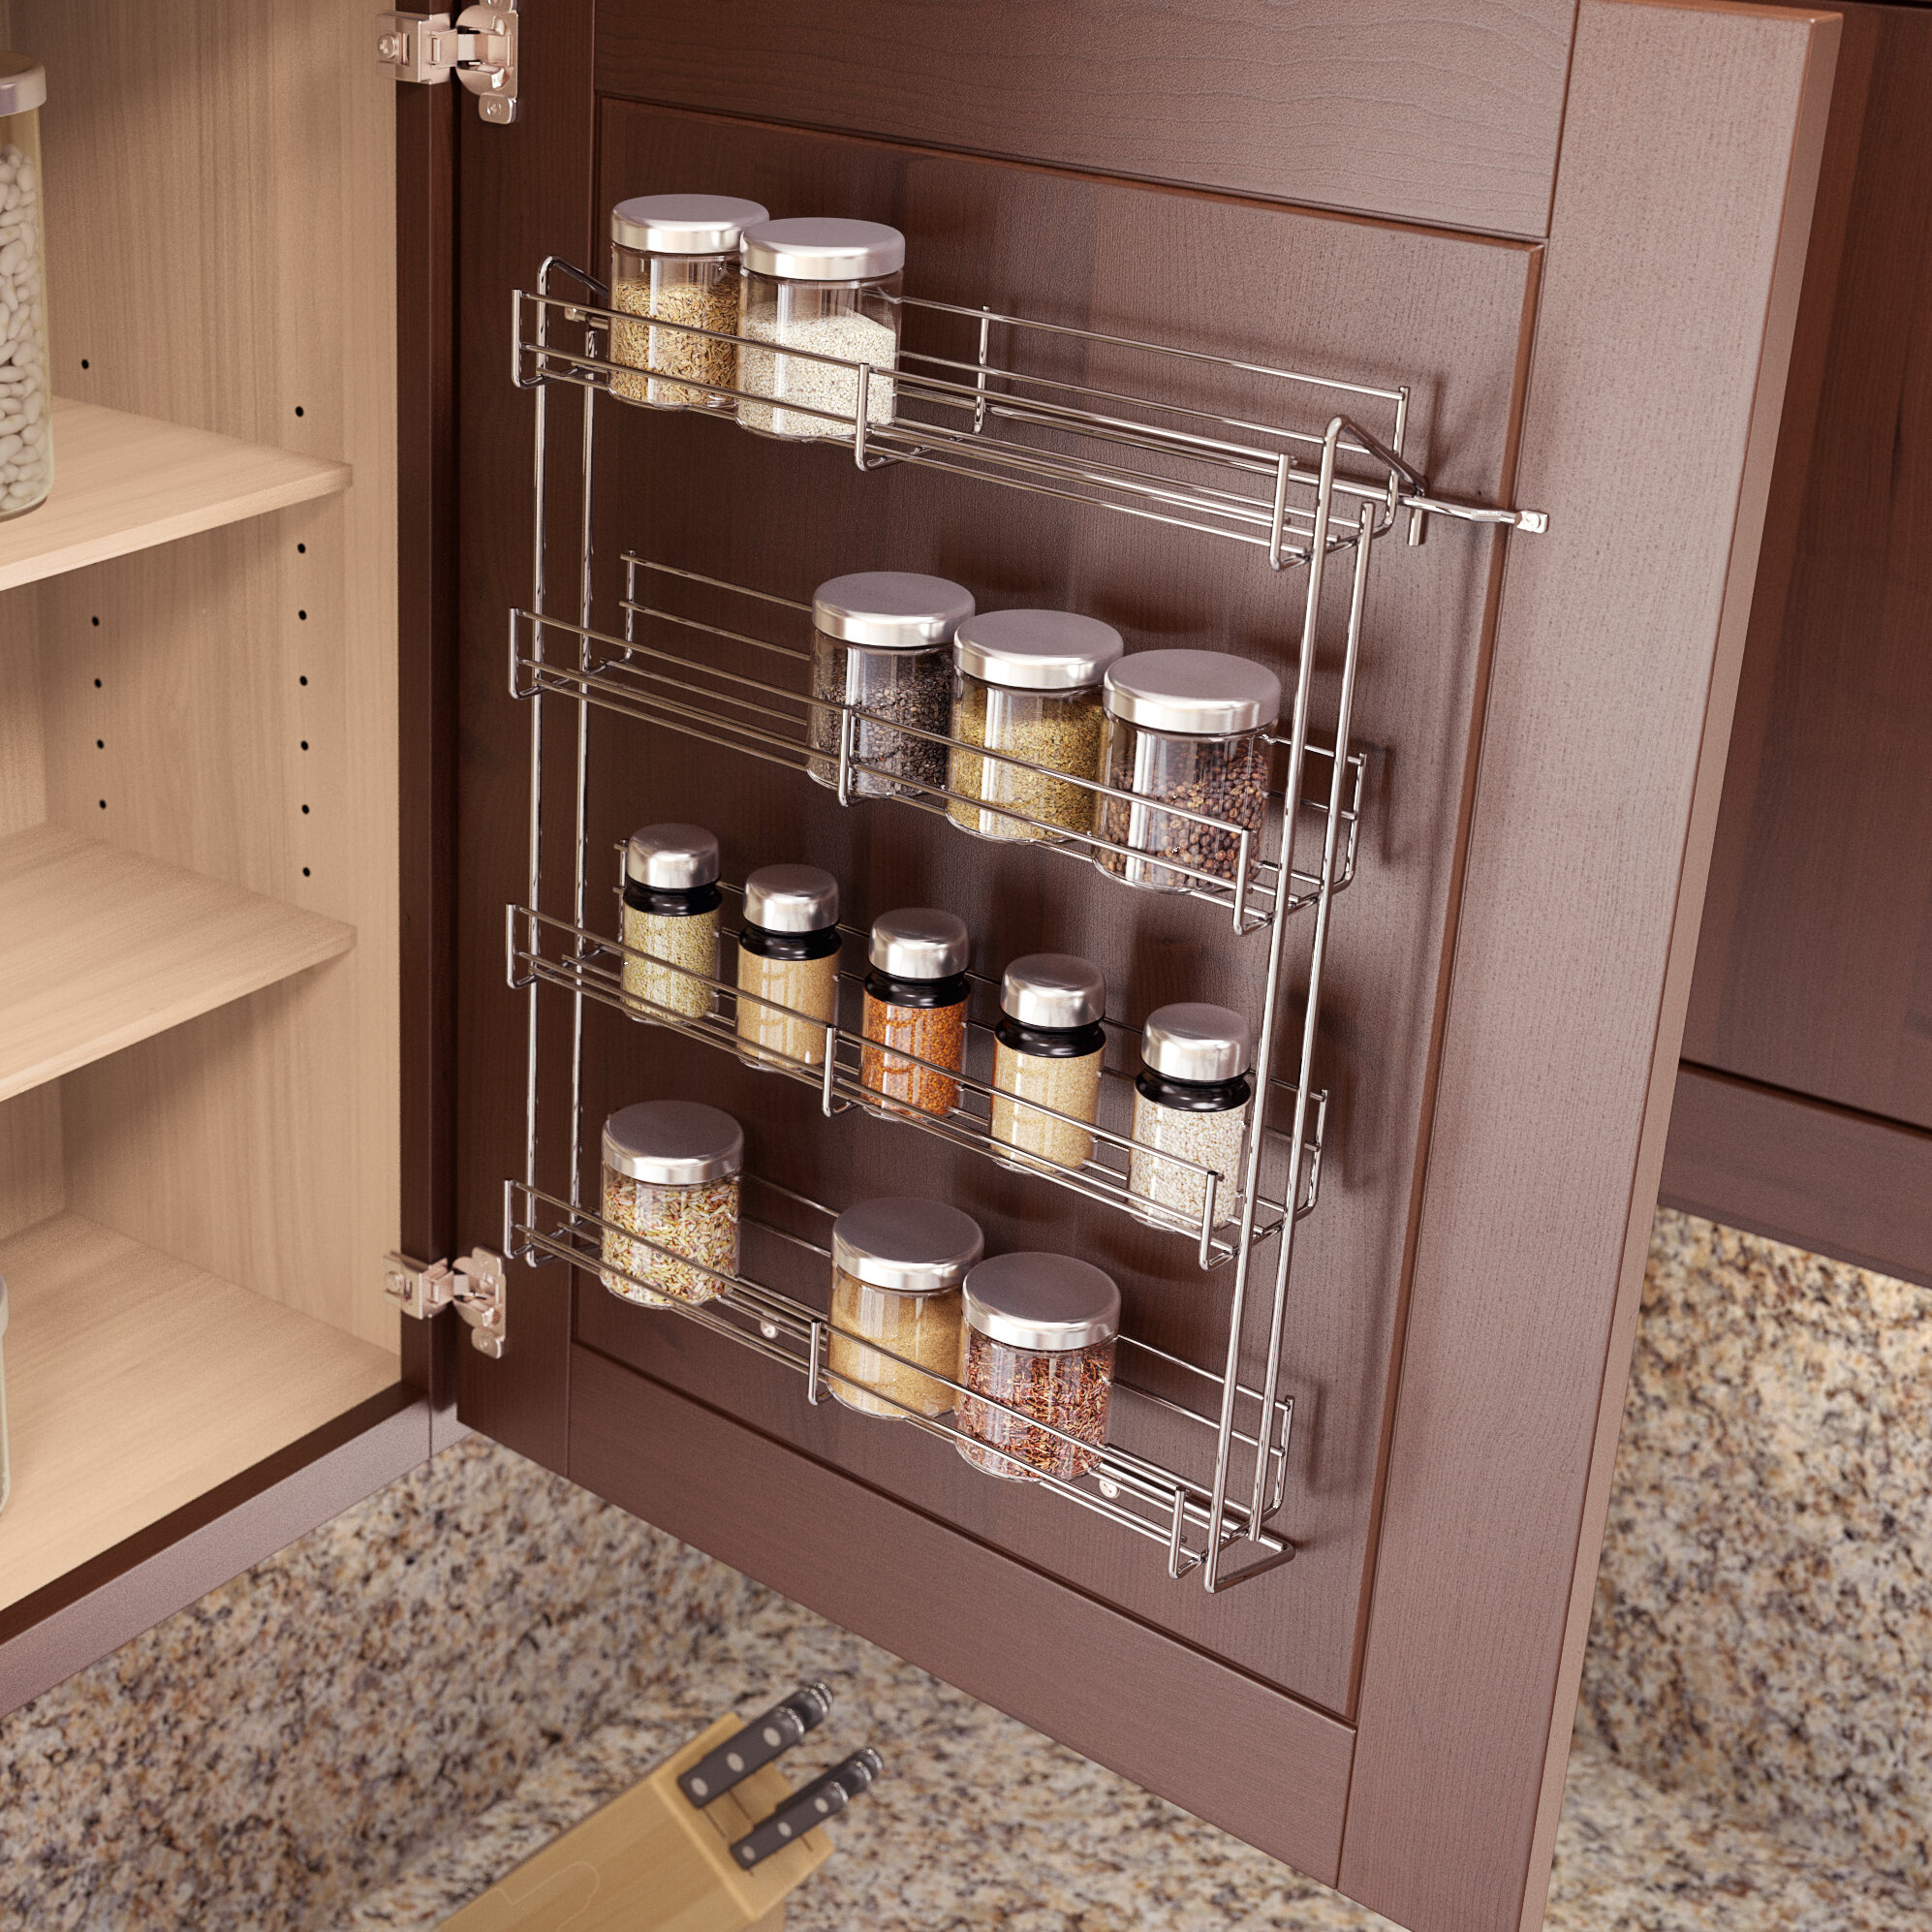 Spice Rack For Kitchen Cabinets: Vauth-Sagel Spice Rack VTSG1150